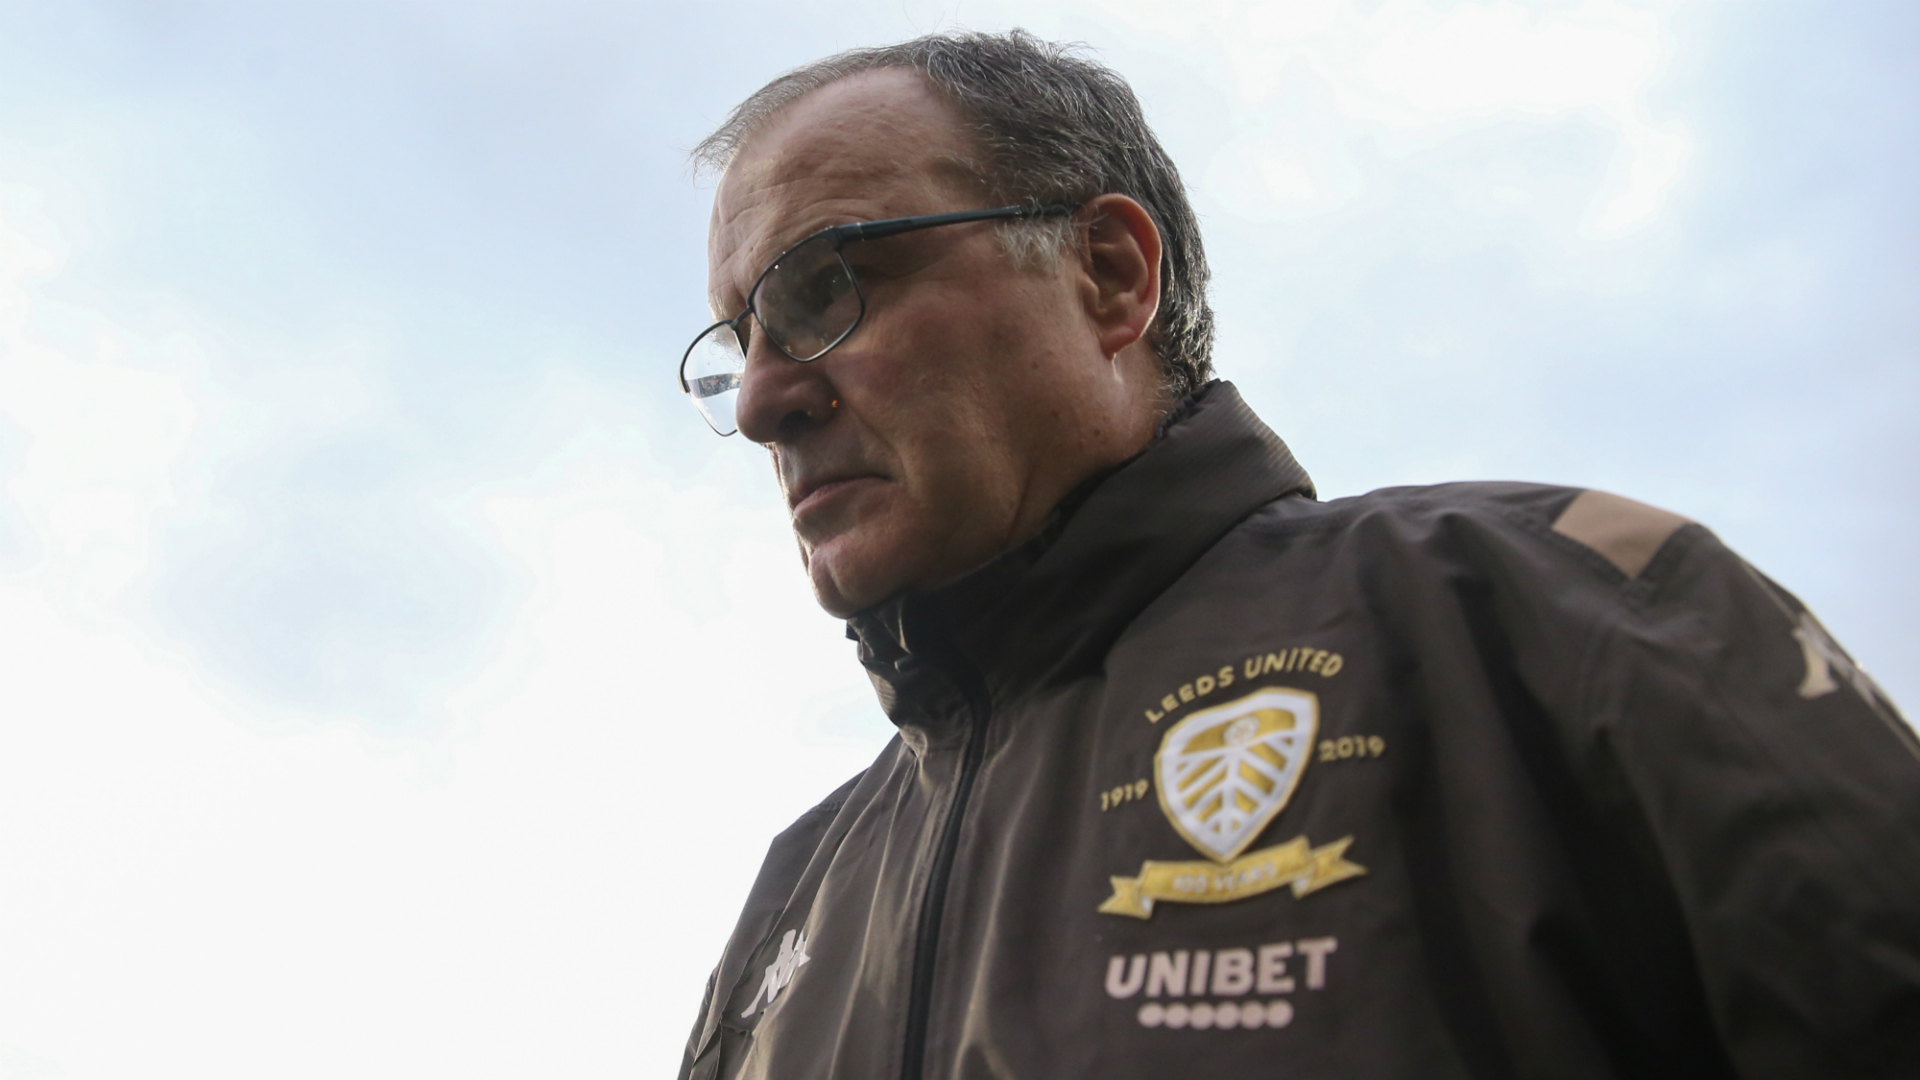 Premier League chance the key to keeping Bielsa at Leeds, says Martyn